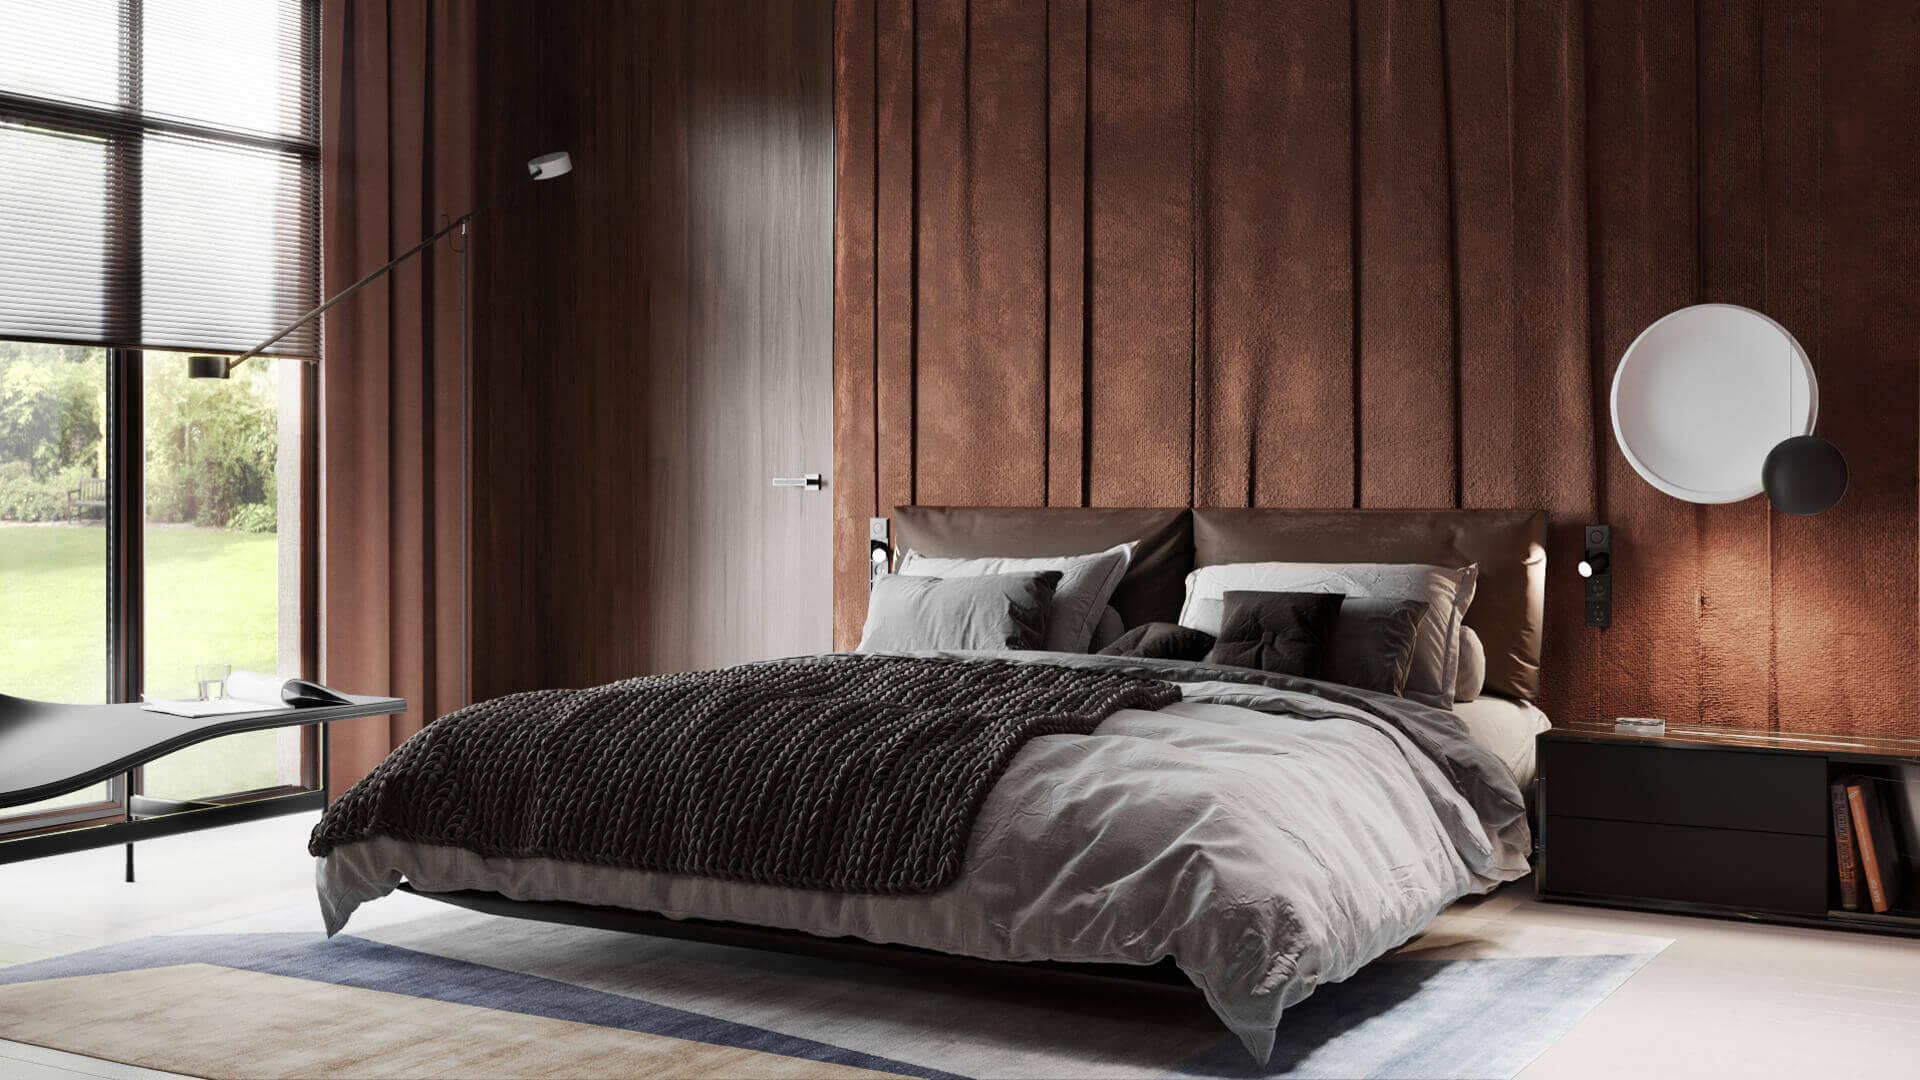 Photorealistic CGI to Show Bedroom Finishes and Textiles Selection